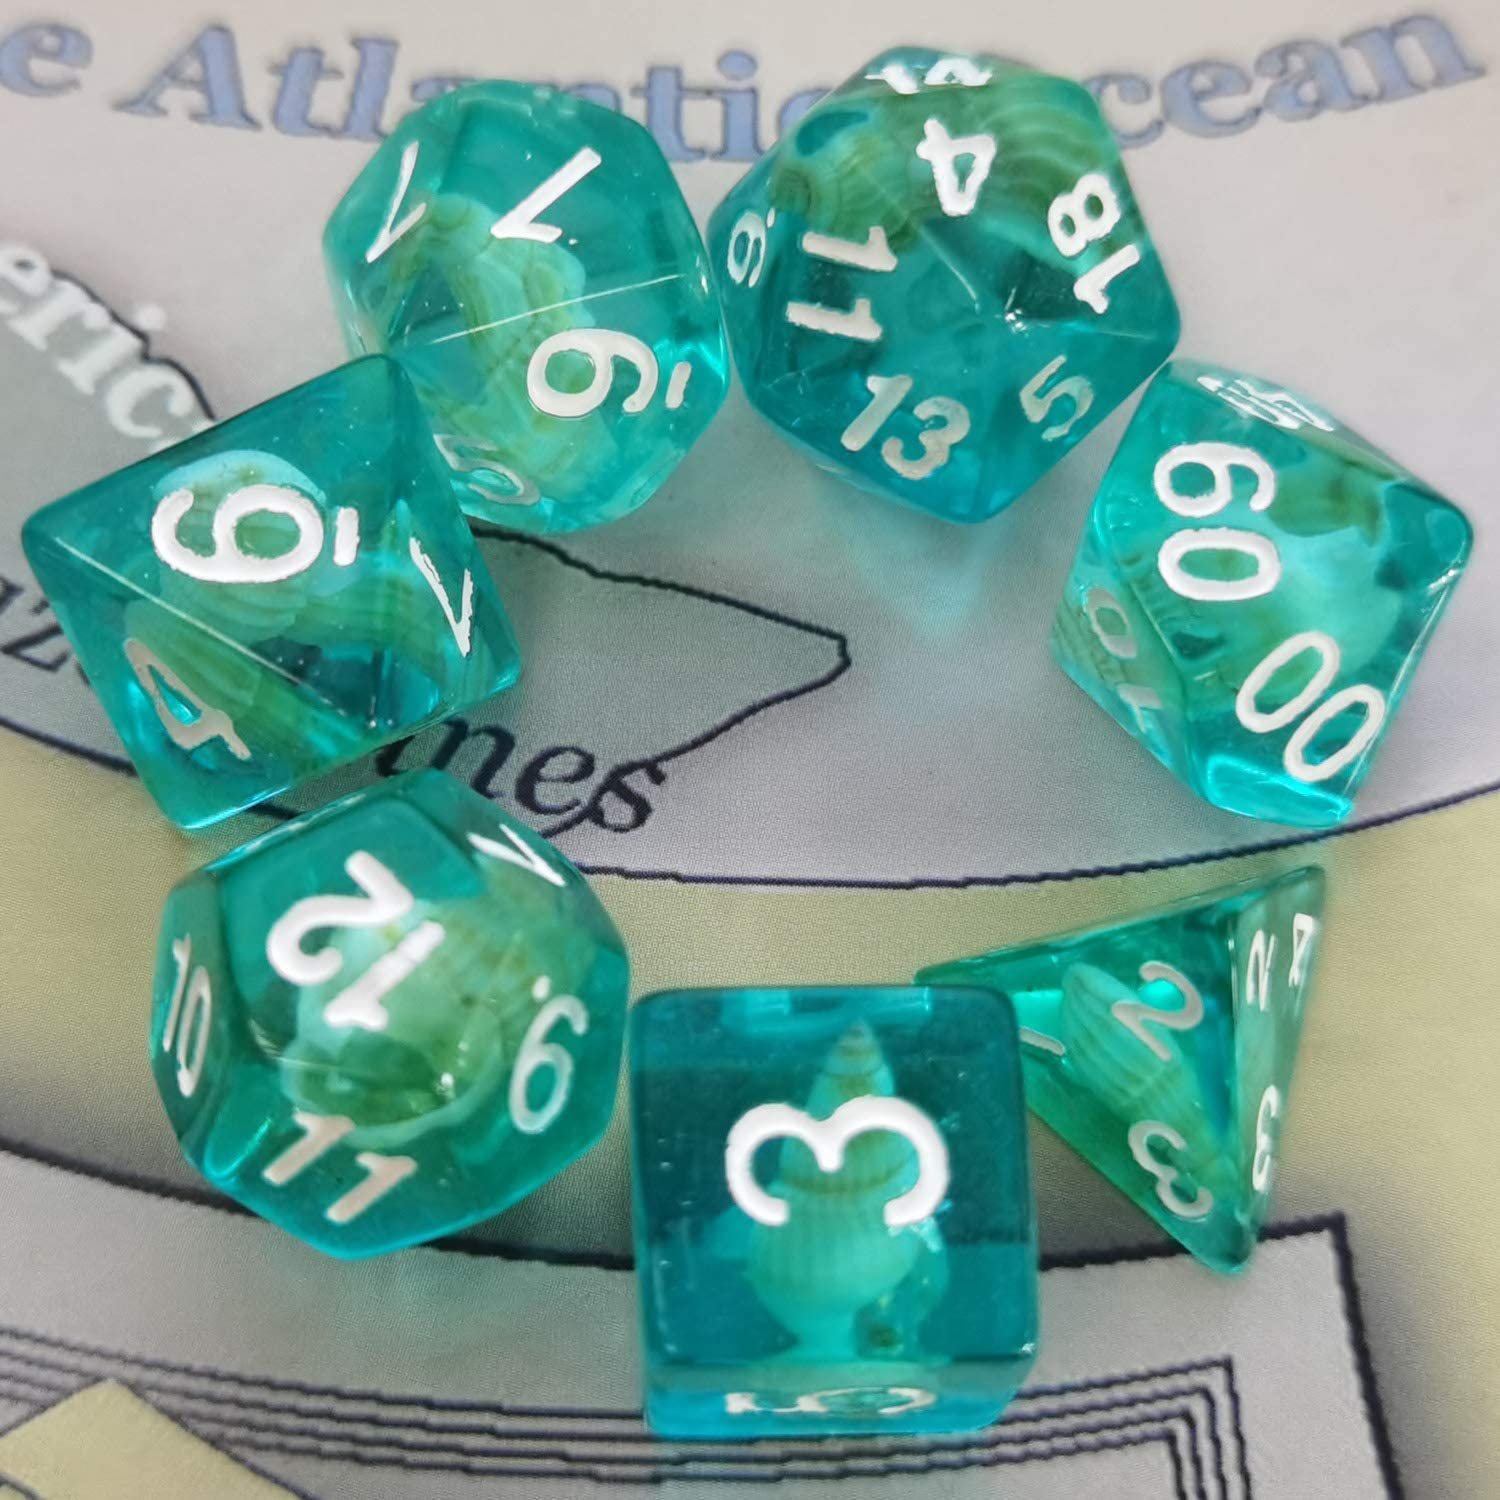 D20 D4 Dice FLASHOWL Conch Dice Transparent Green Dice Set D/&D Polyhedral Dice Set for Dungeons and Dragons Role Playing Game Dice Set of 7 D6 D12 Light Green D8 D10